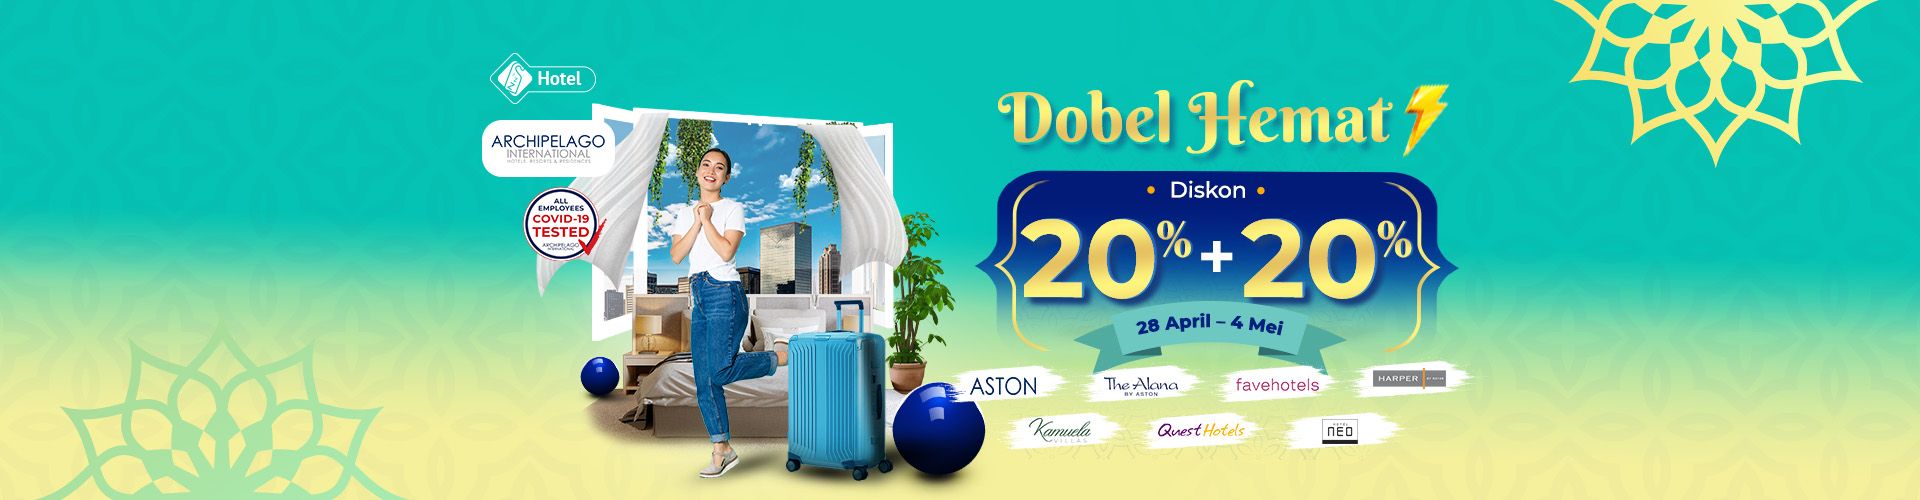 DOBEL HEMAT ARCHIPELAGO GROUP